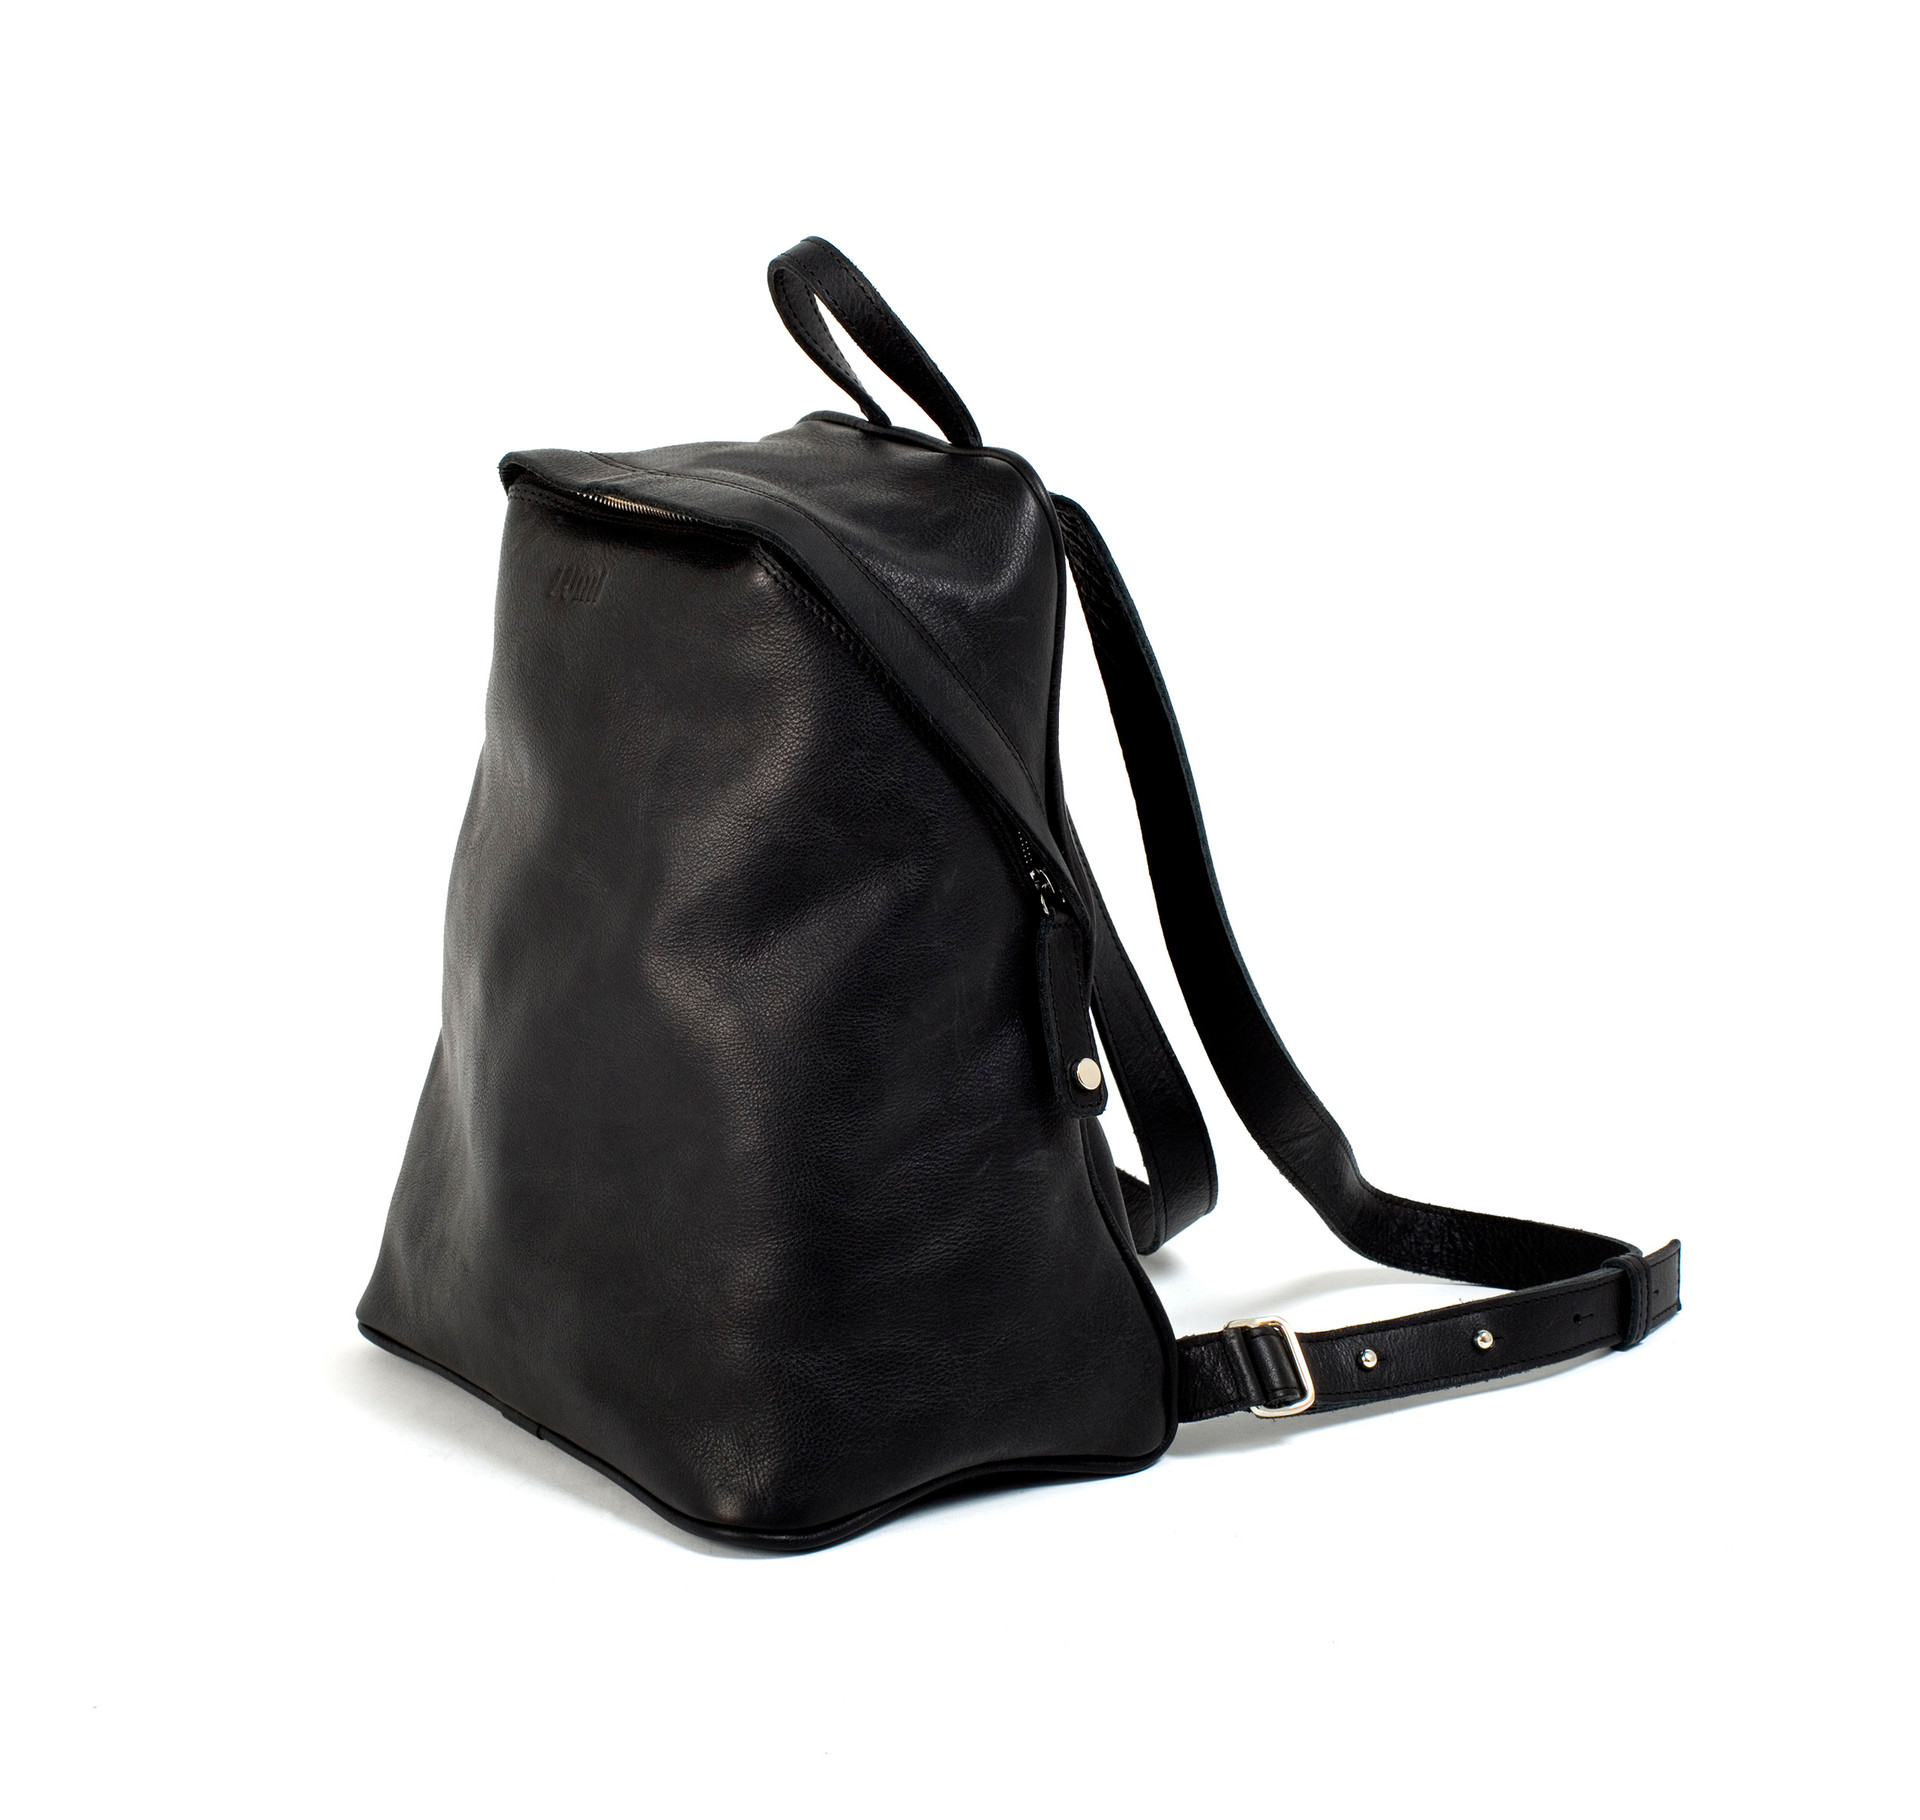 It is a unisex backpack with an adjustable strap and solid shape. It is made with thick and luxurious veg tan leather.